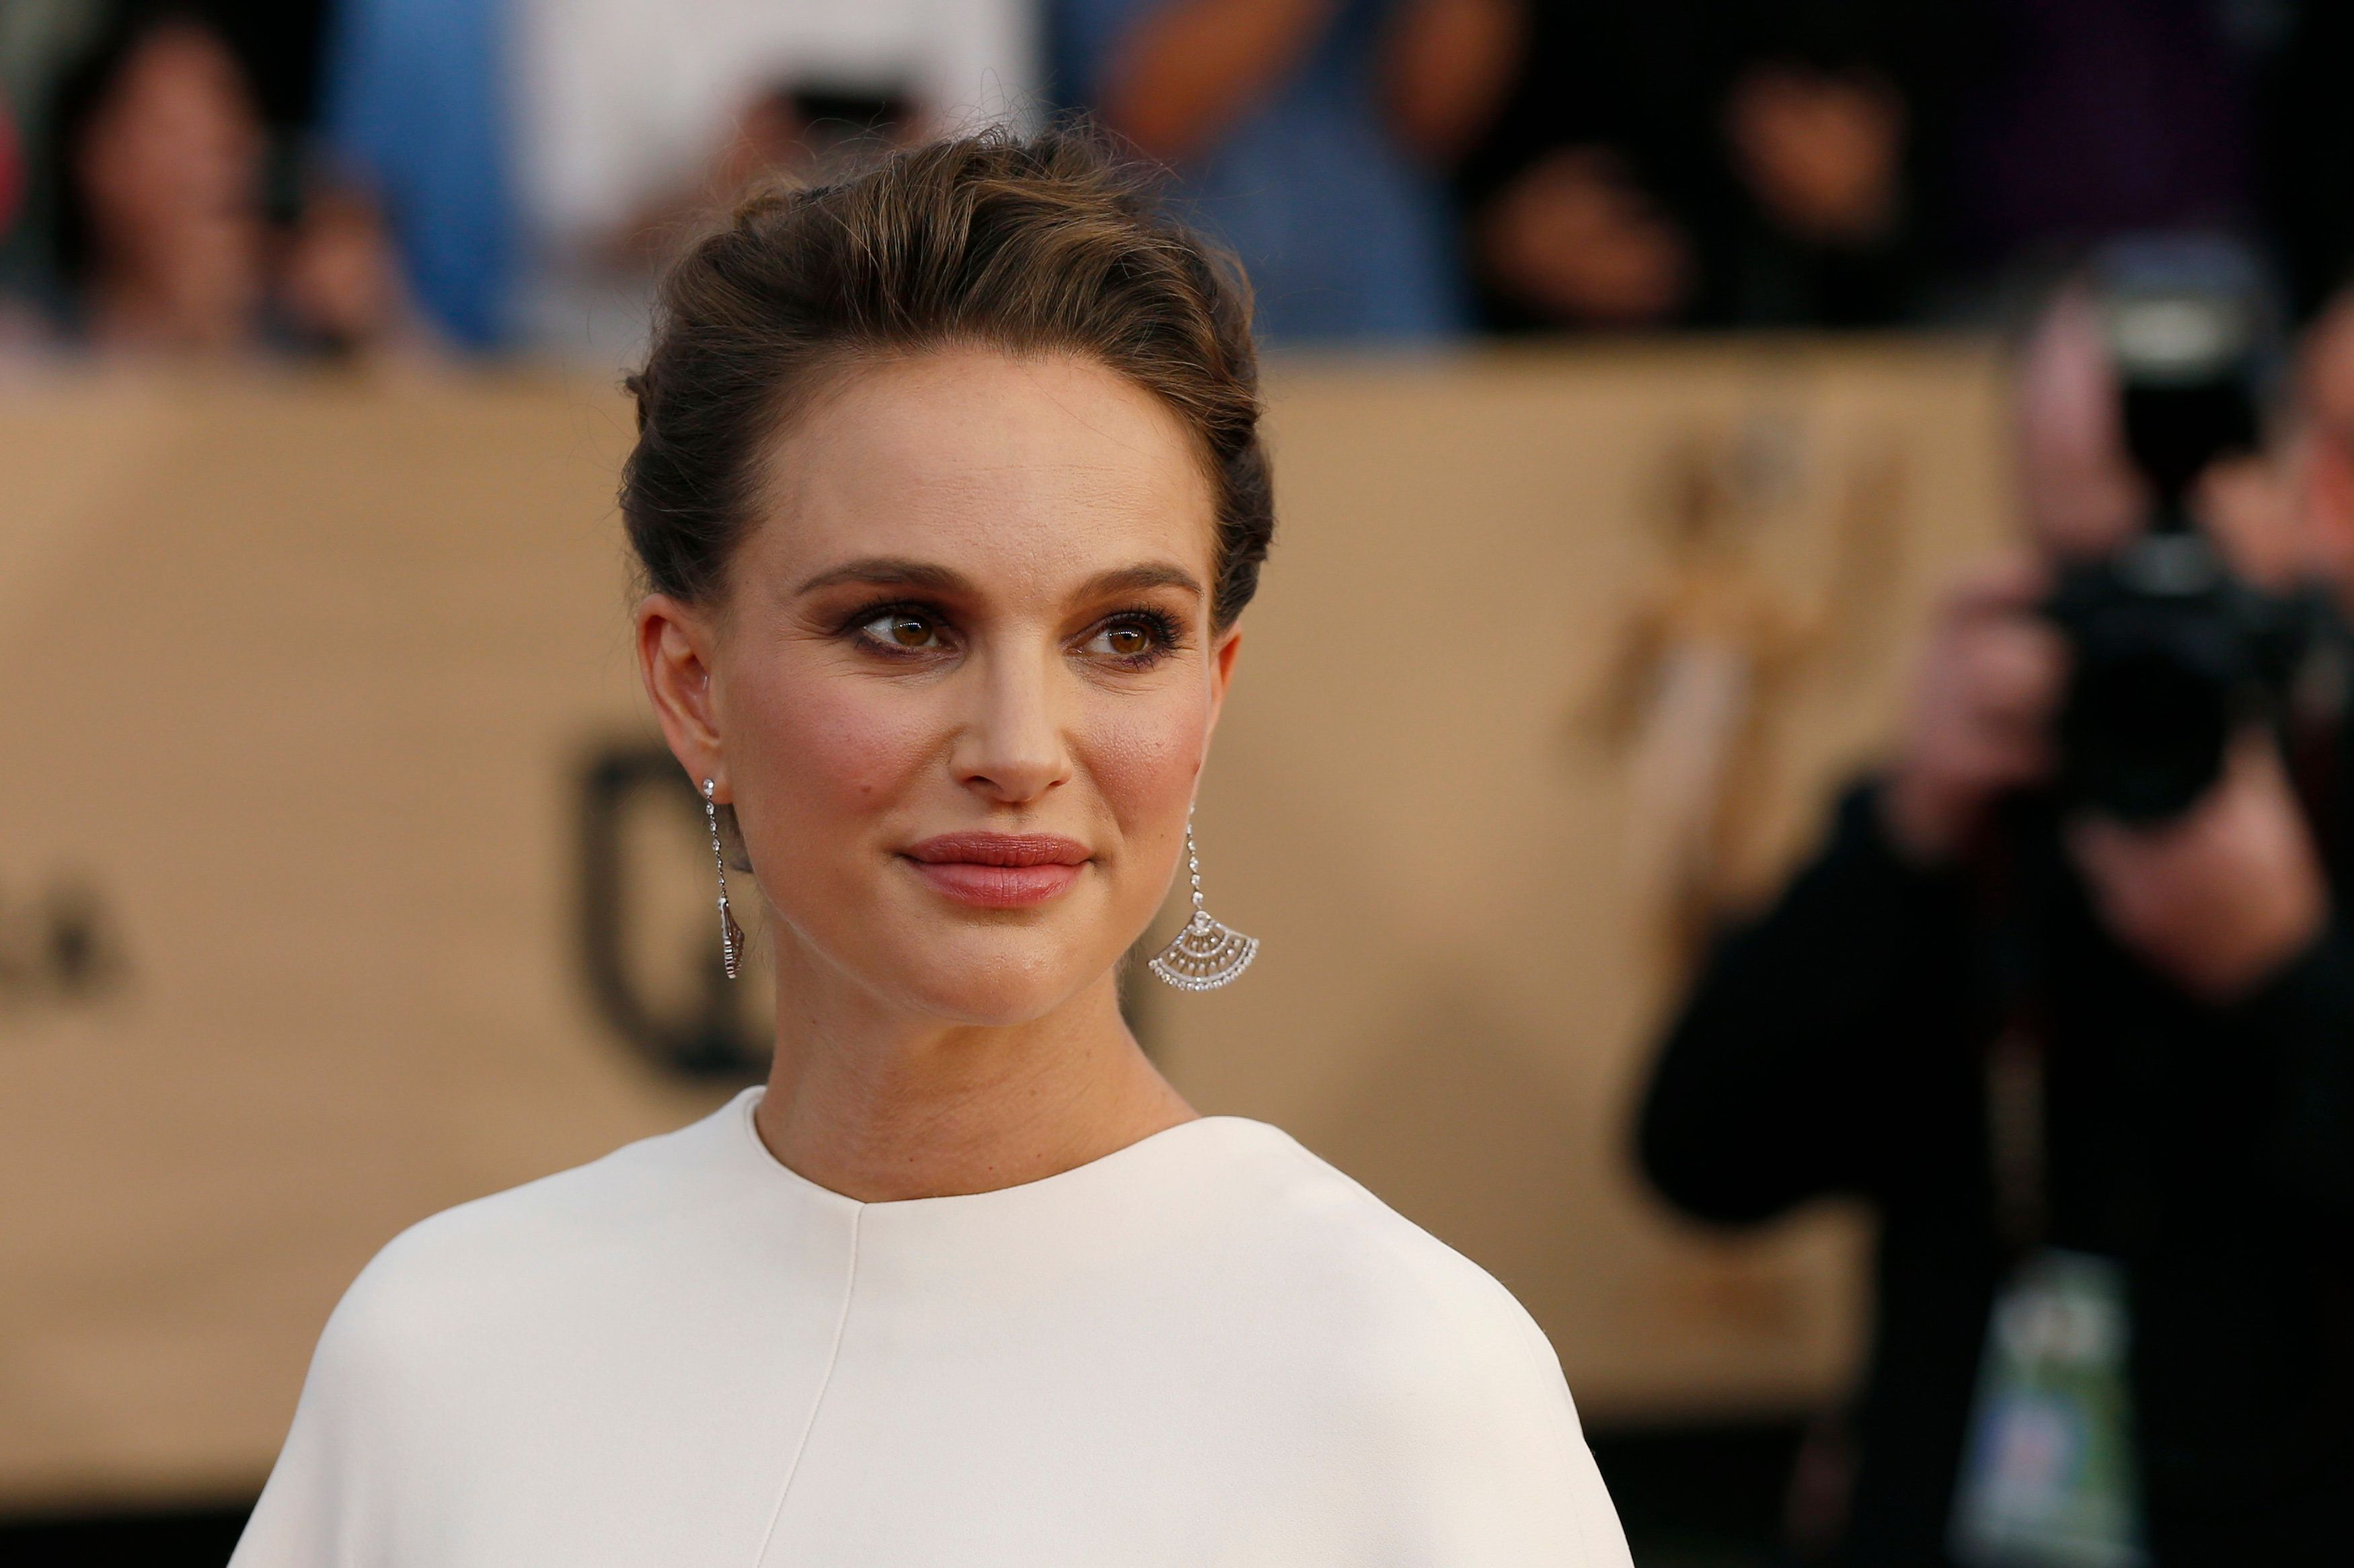 Natalie Portman Says She Has '100 Stories' of Hollywood Harassment and Sexism